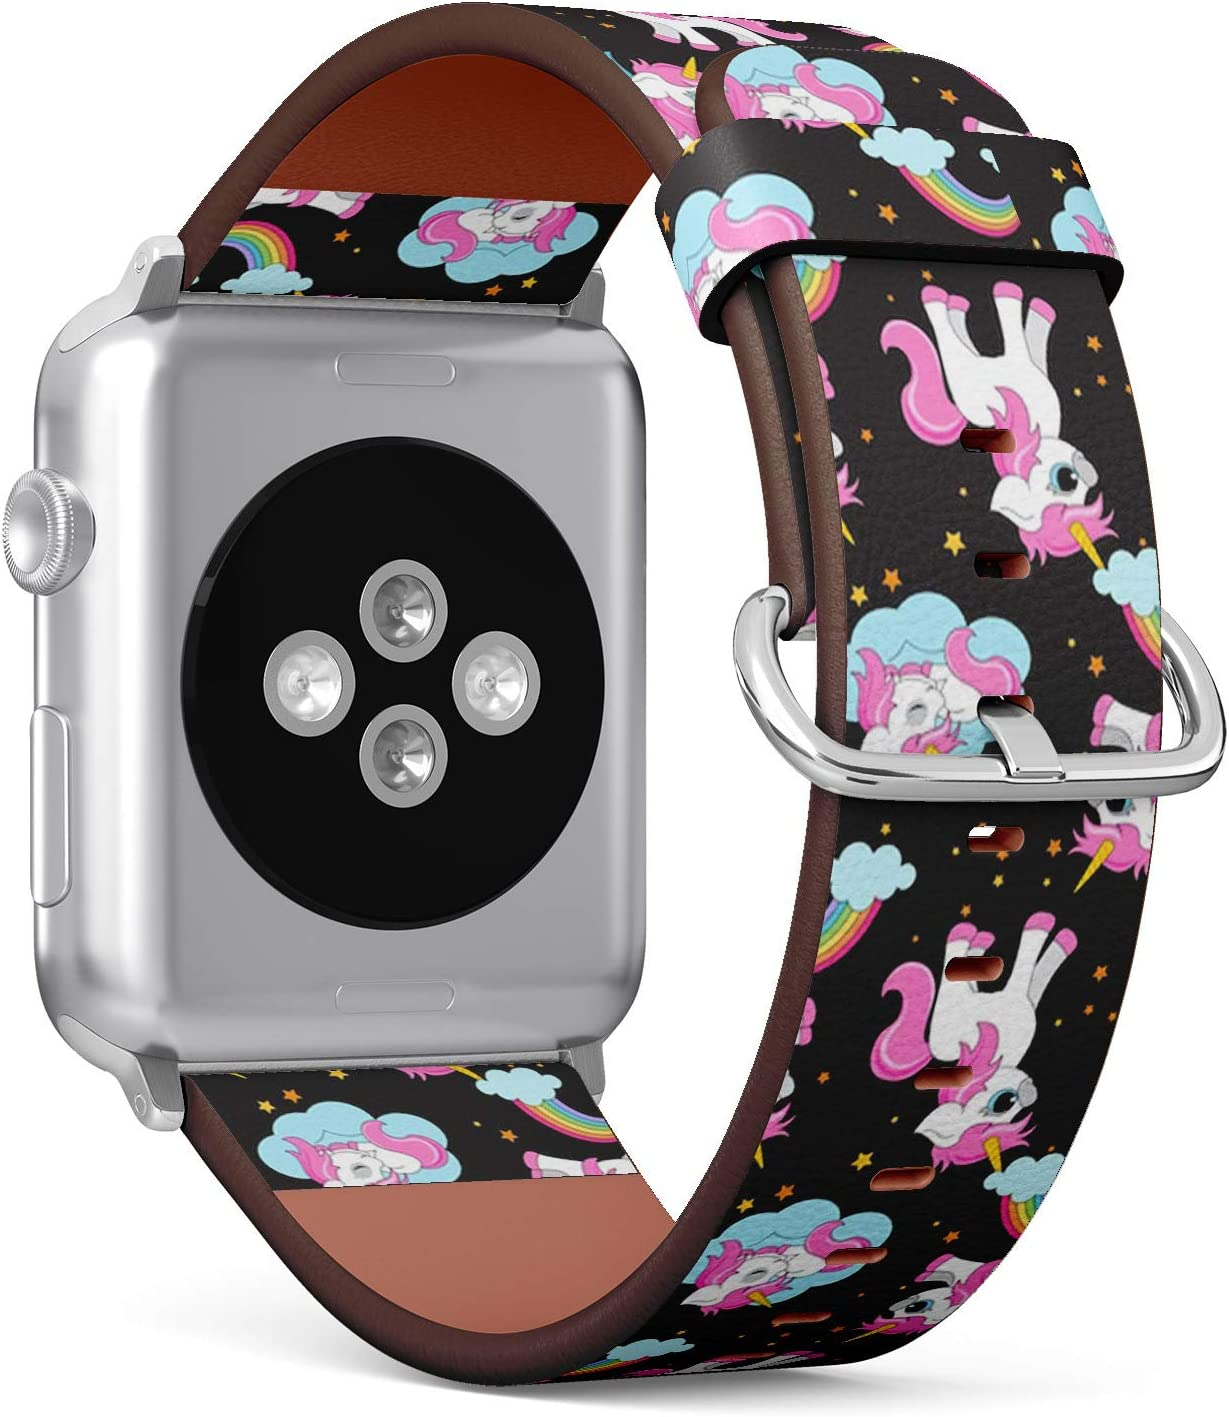 Compatible with Apple Watch Series 5, 4, 3, 2, 1 (Small Version 38/40 mm) Leather Wristband Bracelet Replacement Accessory Band + Adapters - Cute Unicorns Magical